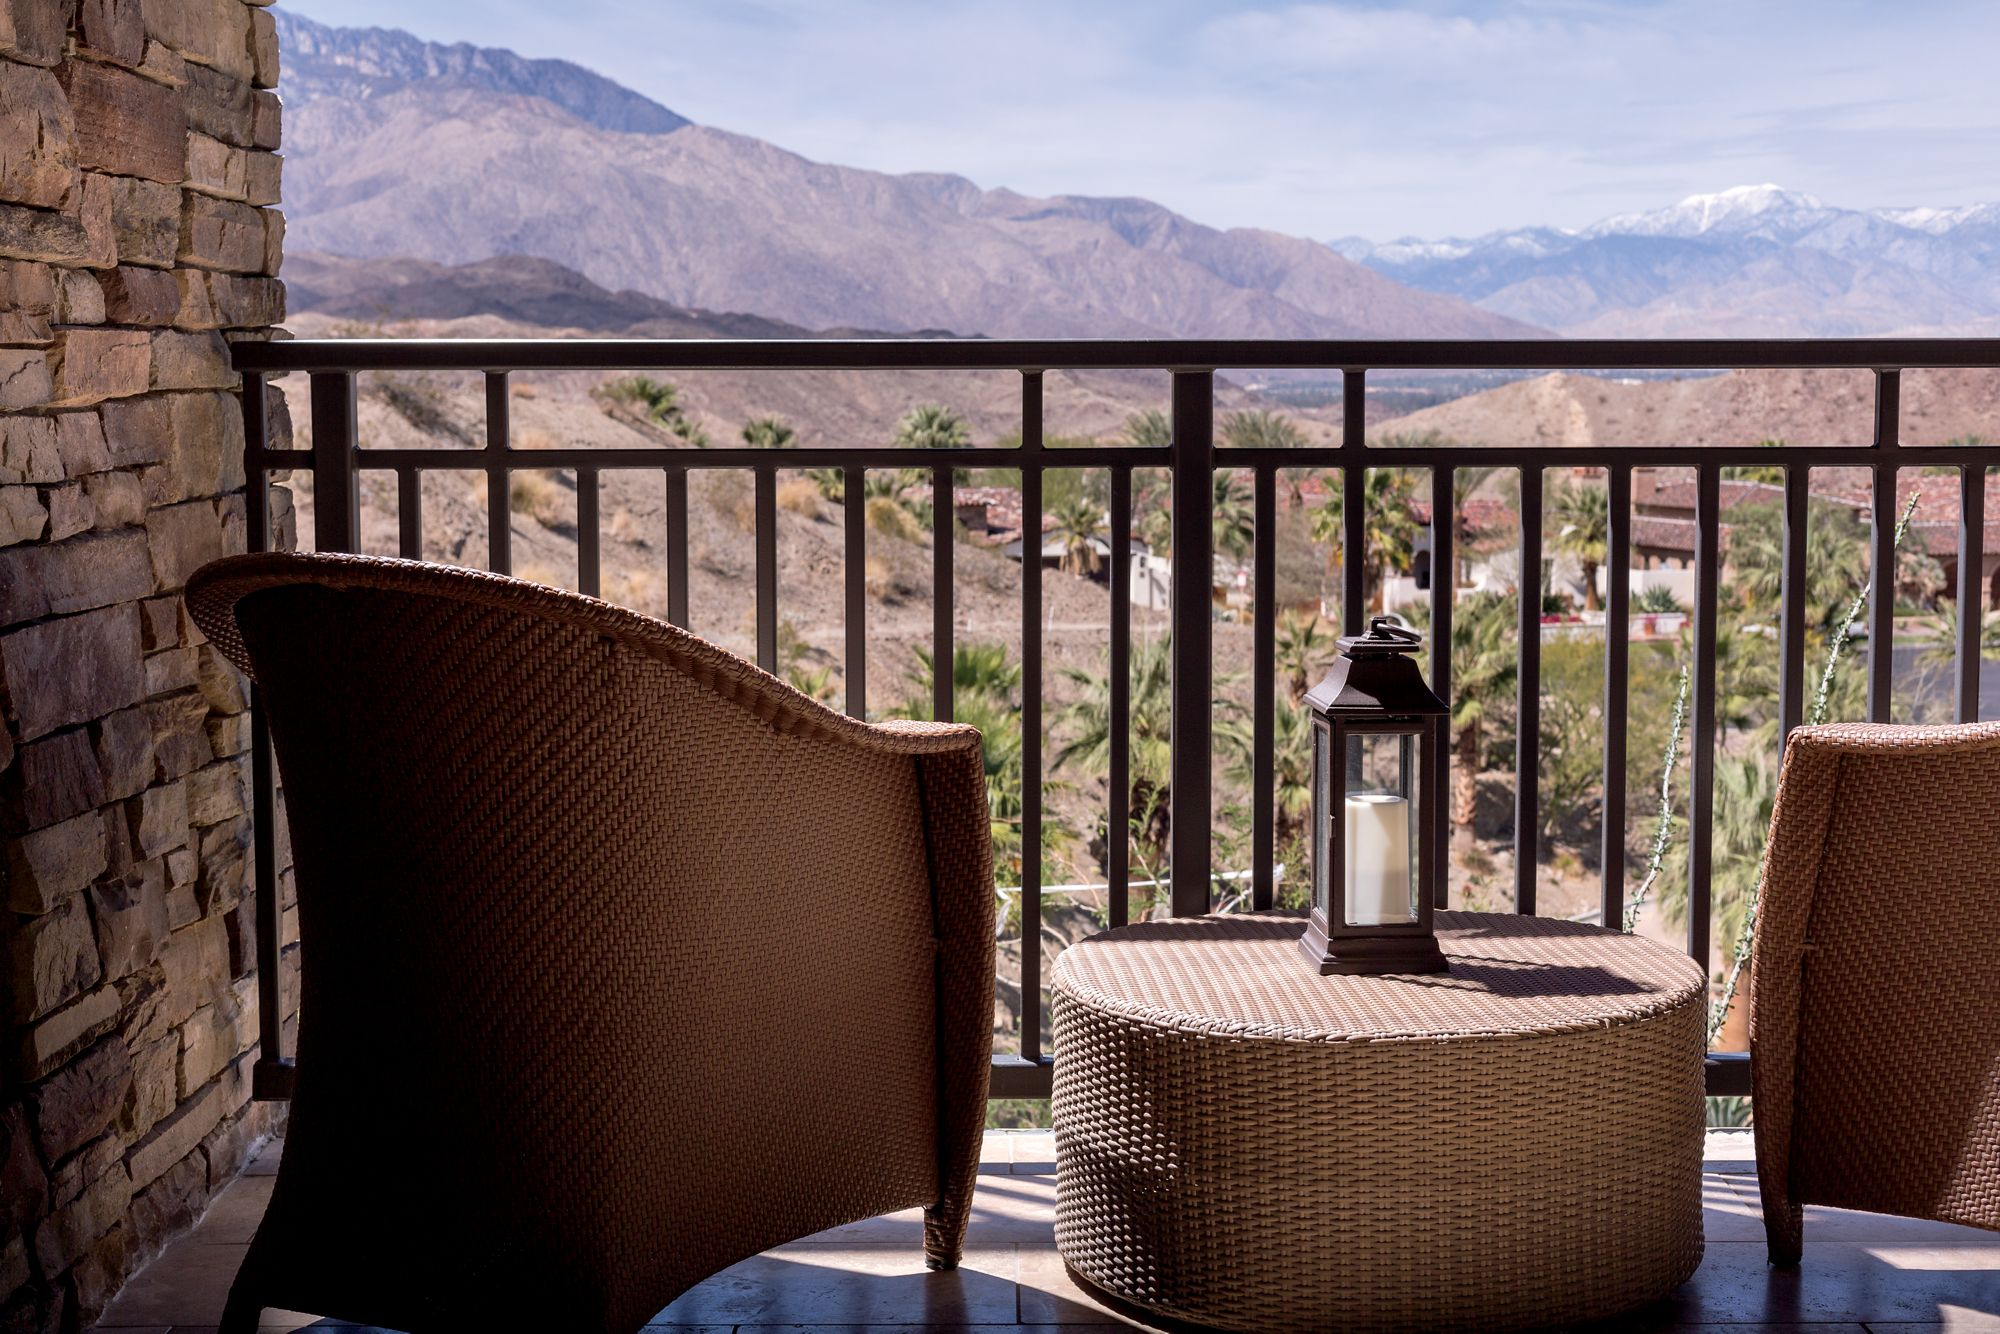 Hotels in Rancho Mirage - Luxury Hotel Palm Springs | The Ritz